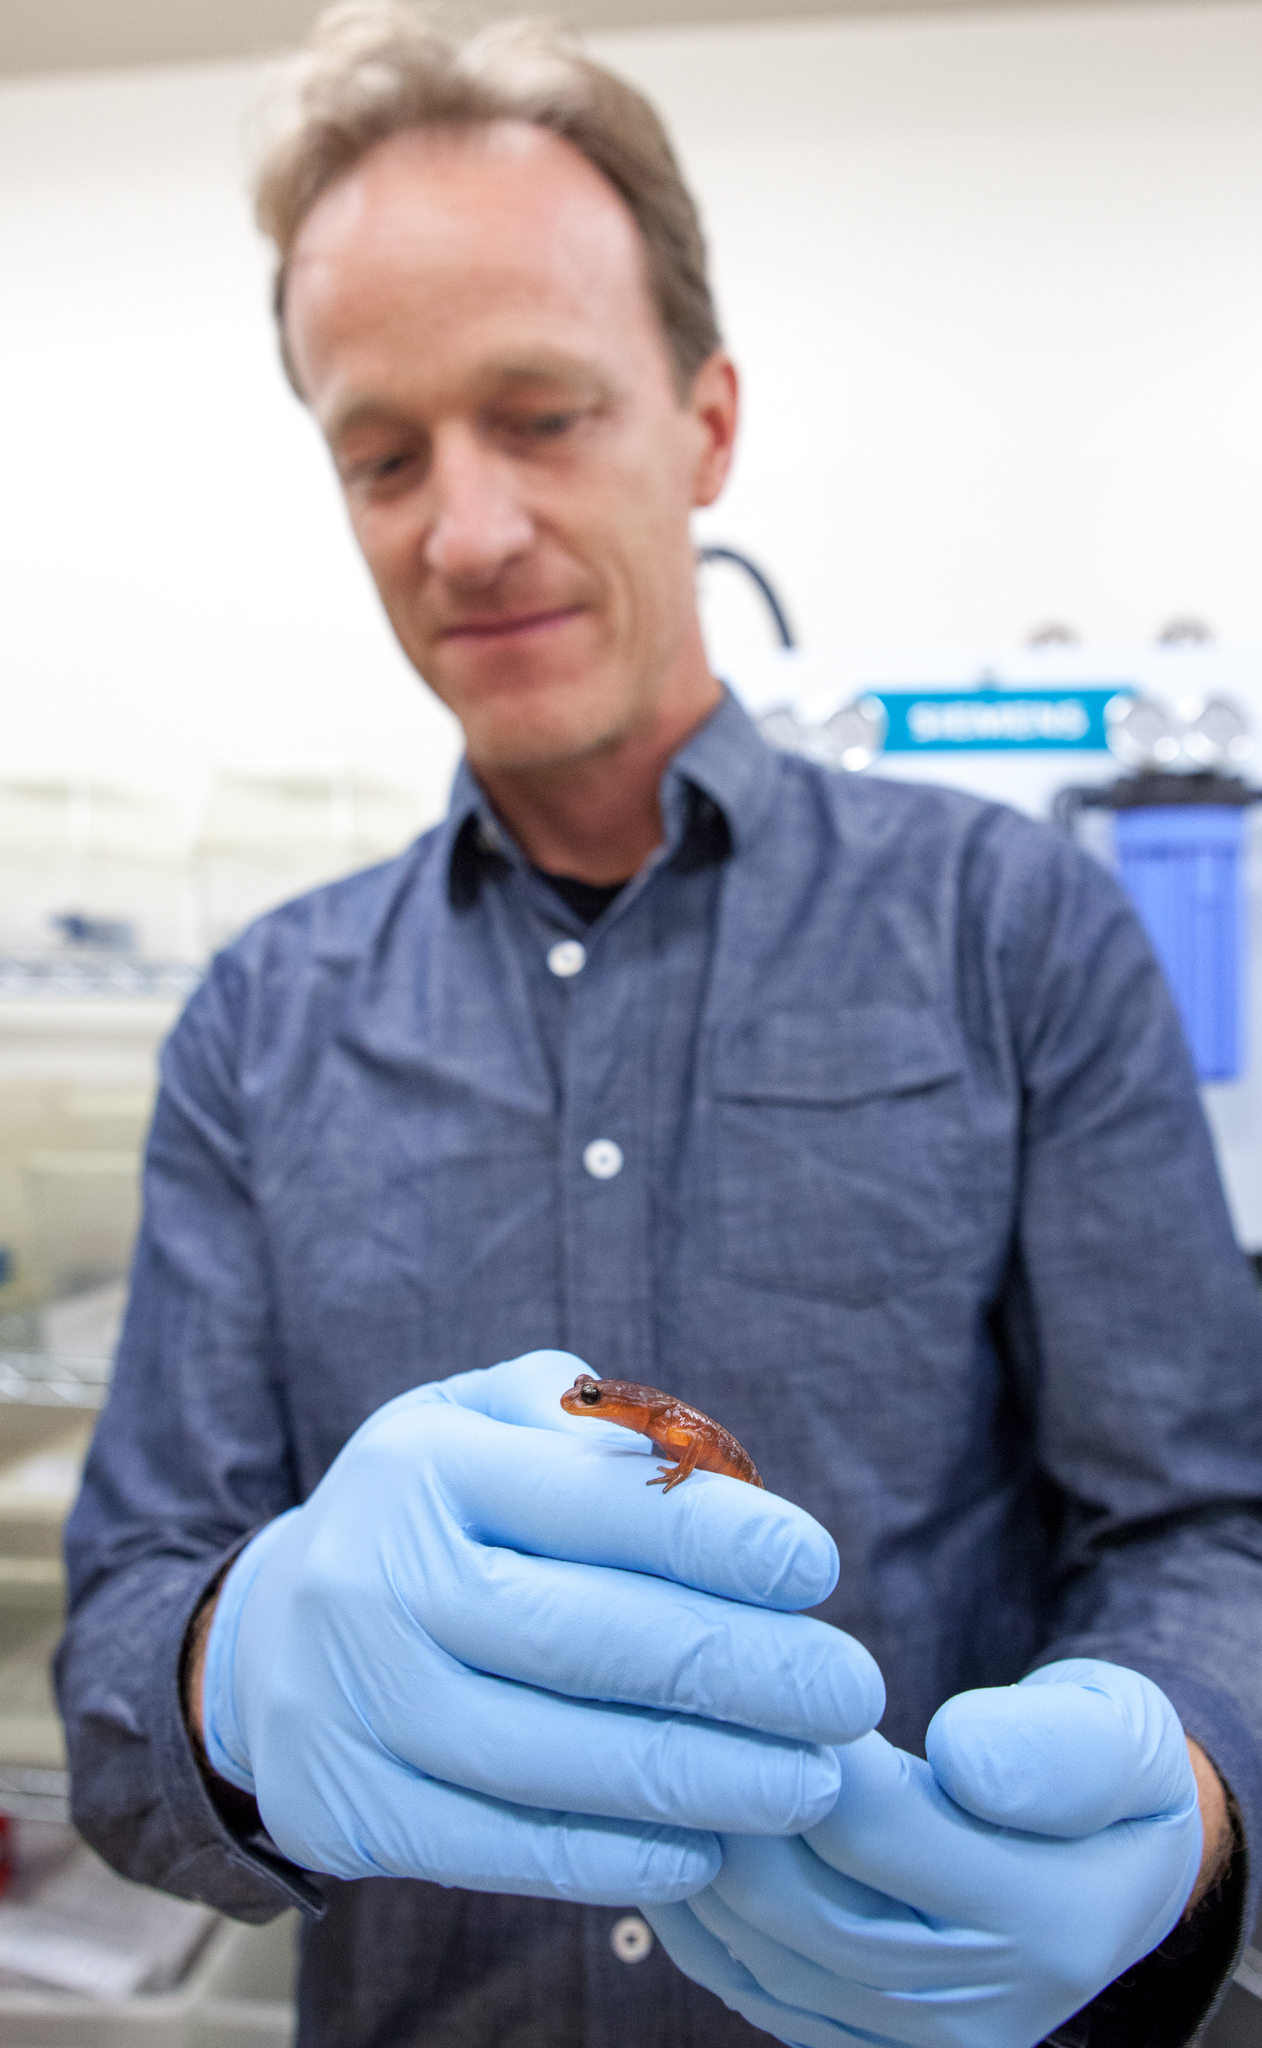 Vance Vredenburg, a professor of biology at San Francisco State University who studies Bd and Bsal, holds a yellow-eyed Ensatina (Ensatina eschscholtzii xanthoptica) in his lab. This is one of several salamanders that he'll expose to Bsal in an effort to better understand susceptibility among various species. Photograph by Geoffrey Giller